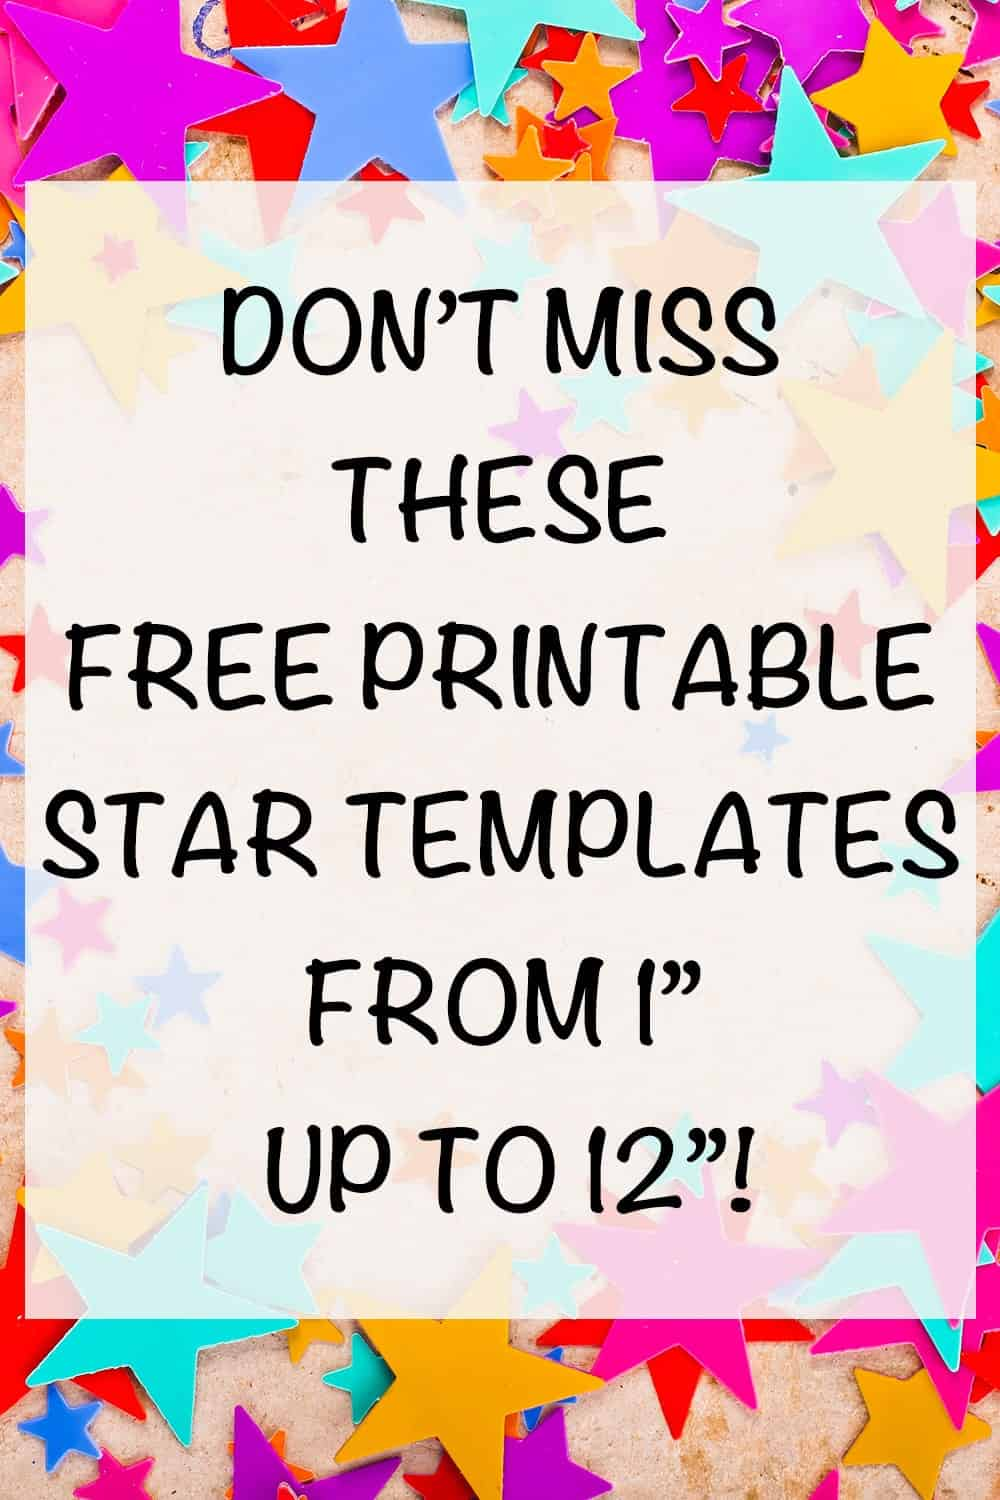 "free printable star templates from 1"" to 12"""